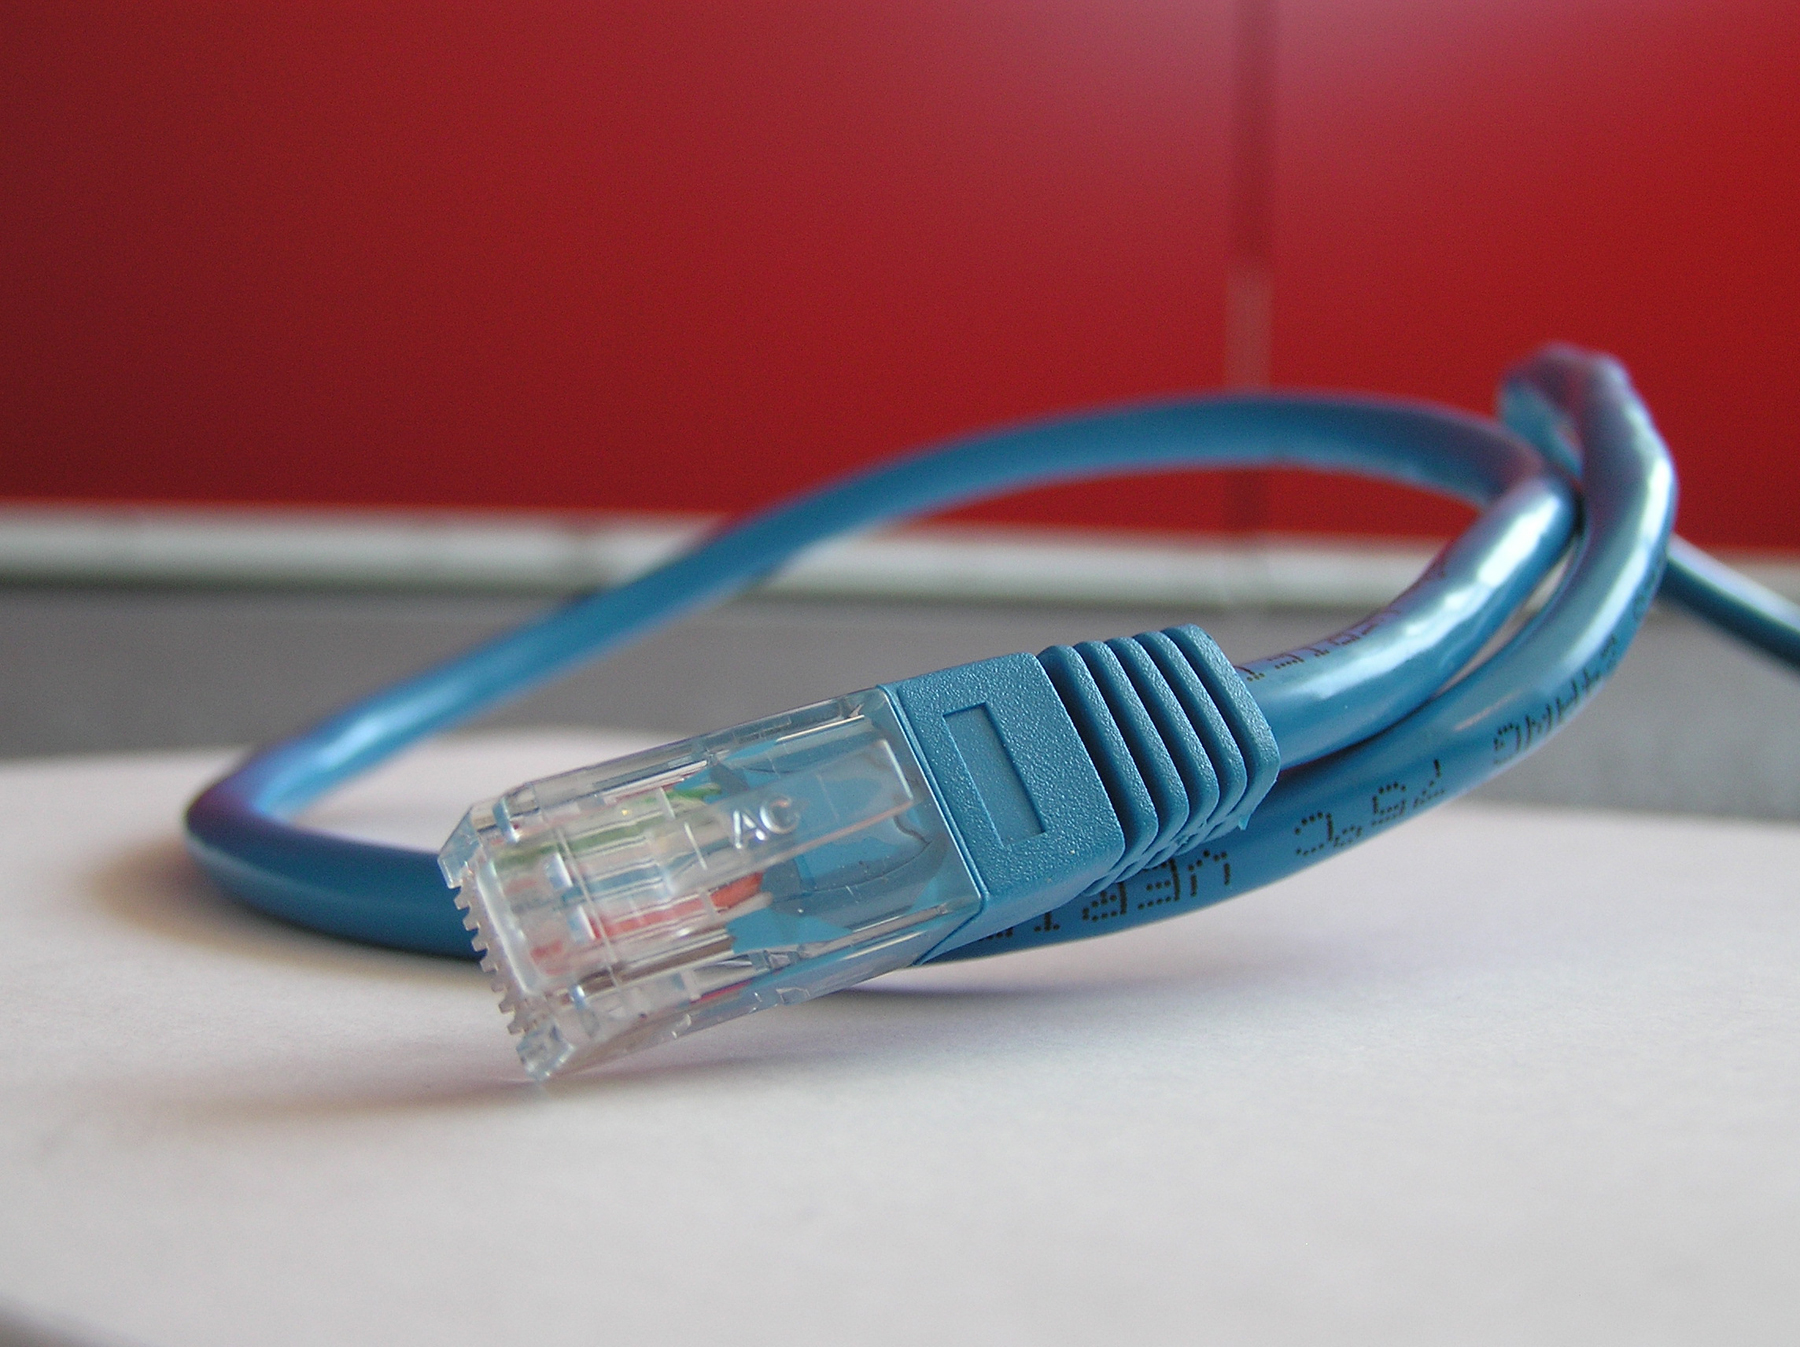 Free photo: Blue USB cable - Usb, Wire, Plug - Free Download - Jooinn